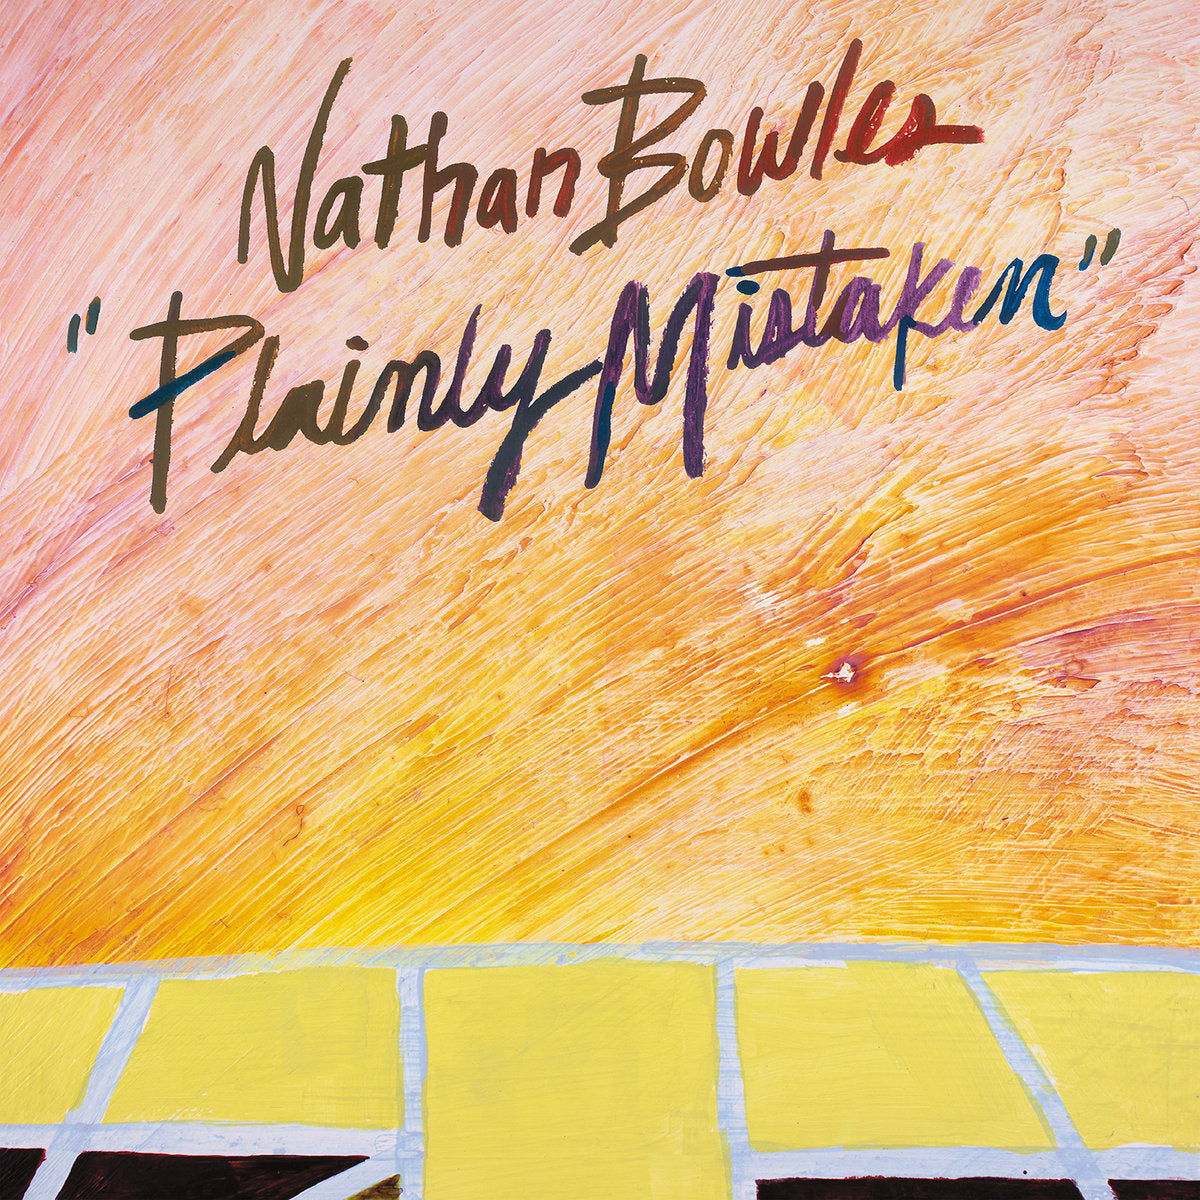 Nathan Bowles - Plainly Mistaken LP